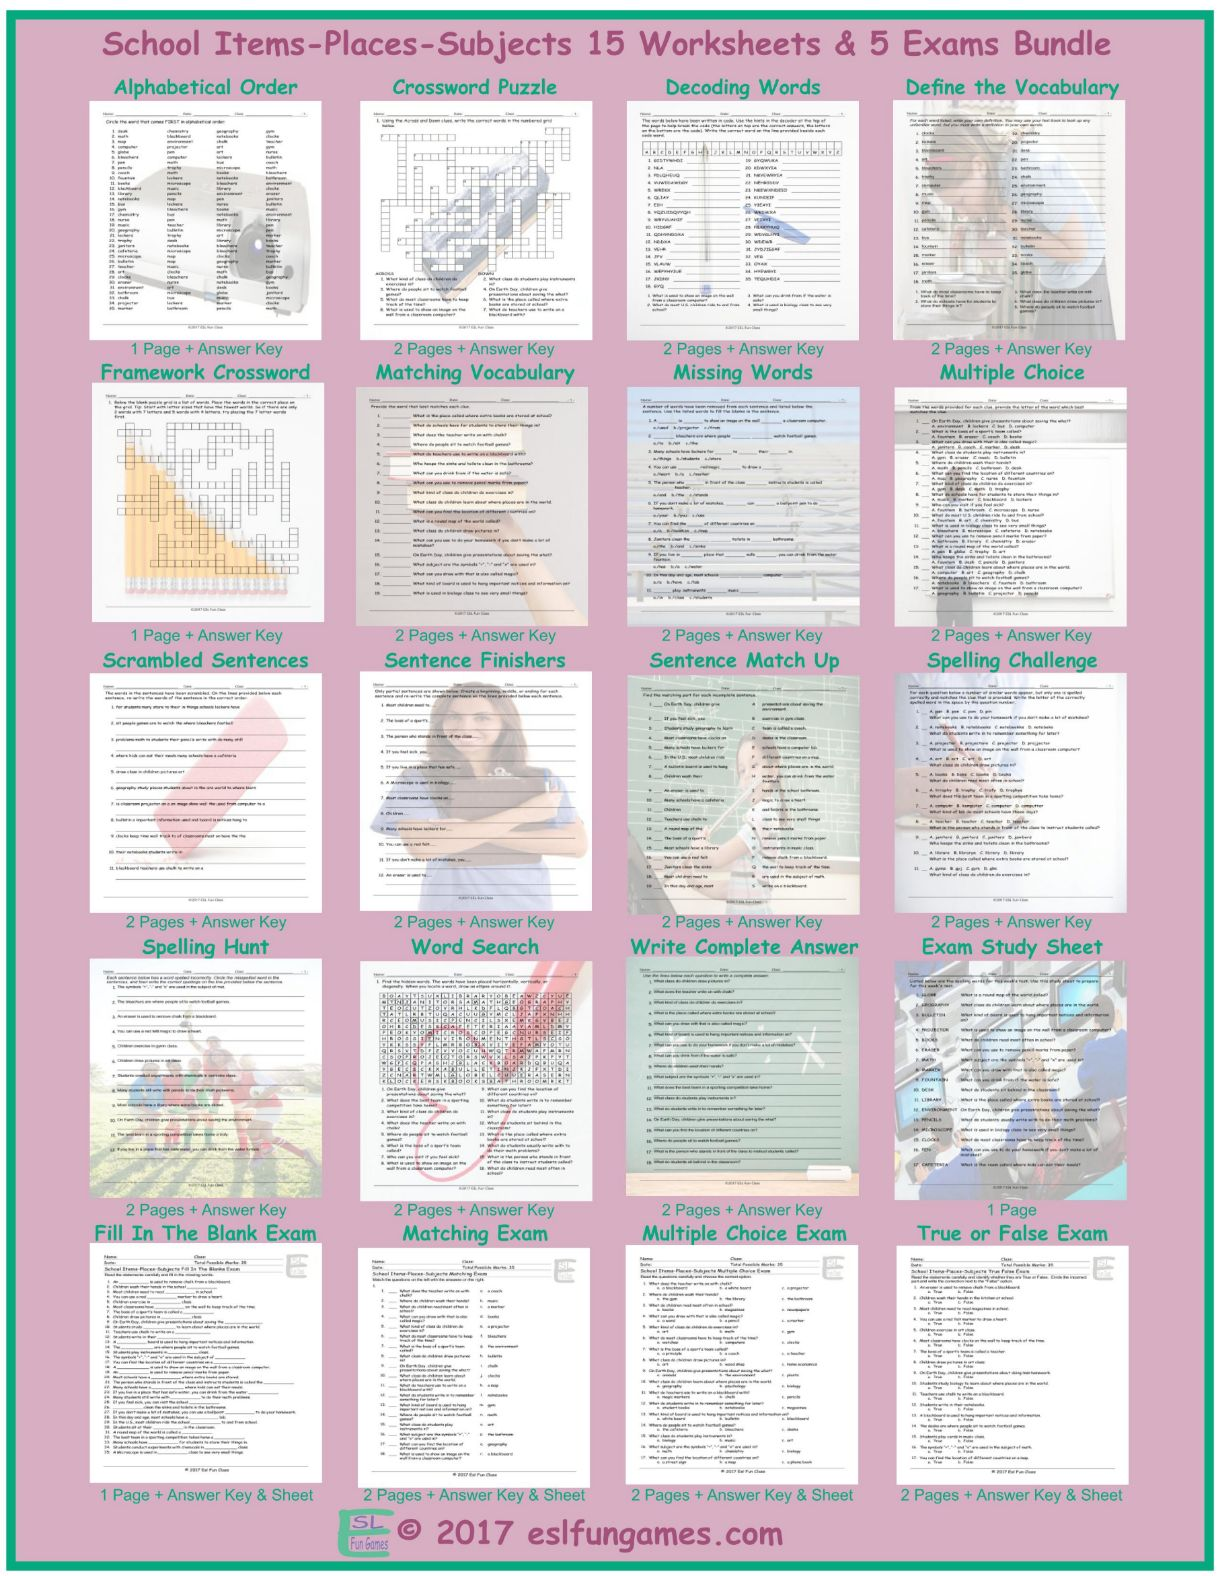 School Items Places Subjects 20 Worksheet And Exam Bundle